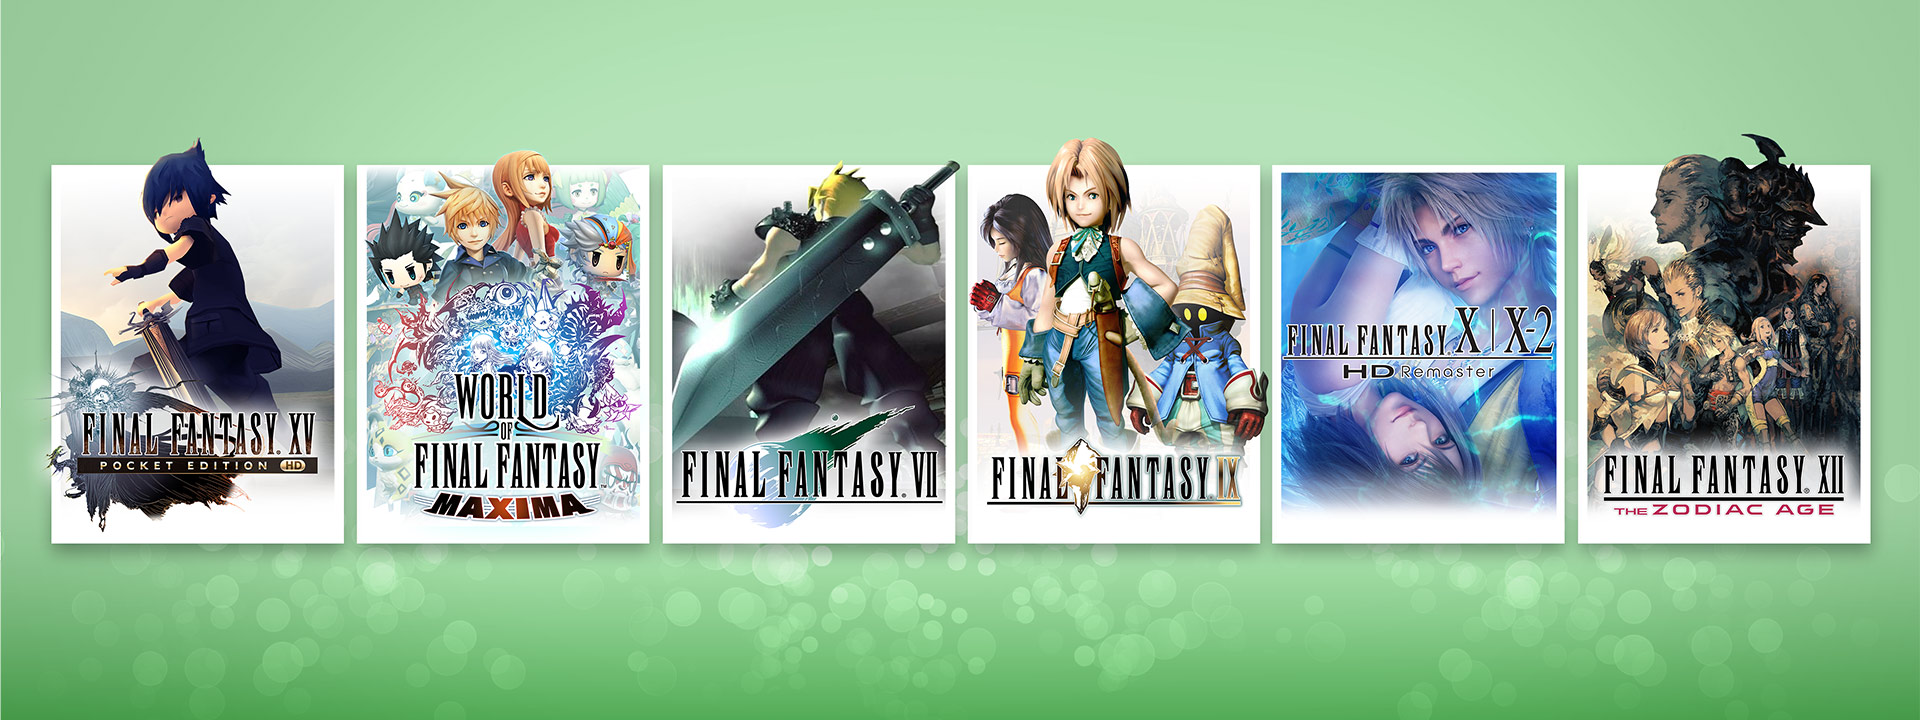 Dobozképek a következő játékokról: FINAL FANTASY XV POCKET EDITION HD, WORLD OF FINAL FANTASY MAXIMA, FINAL FANTASY VII, FINAL FANTASY IX, FINAL FANTASY X | X-2 HD Remaster, valamint FINAL FANTASY XII THE ZODIAC AGE